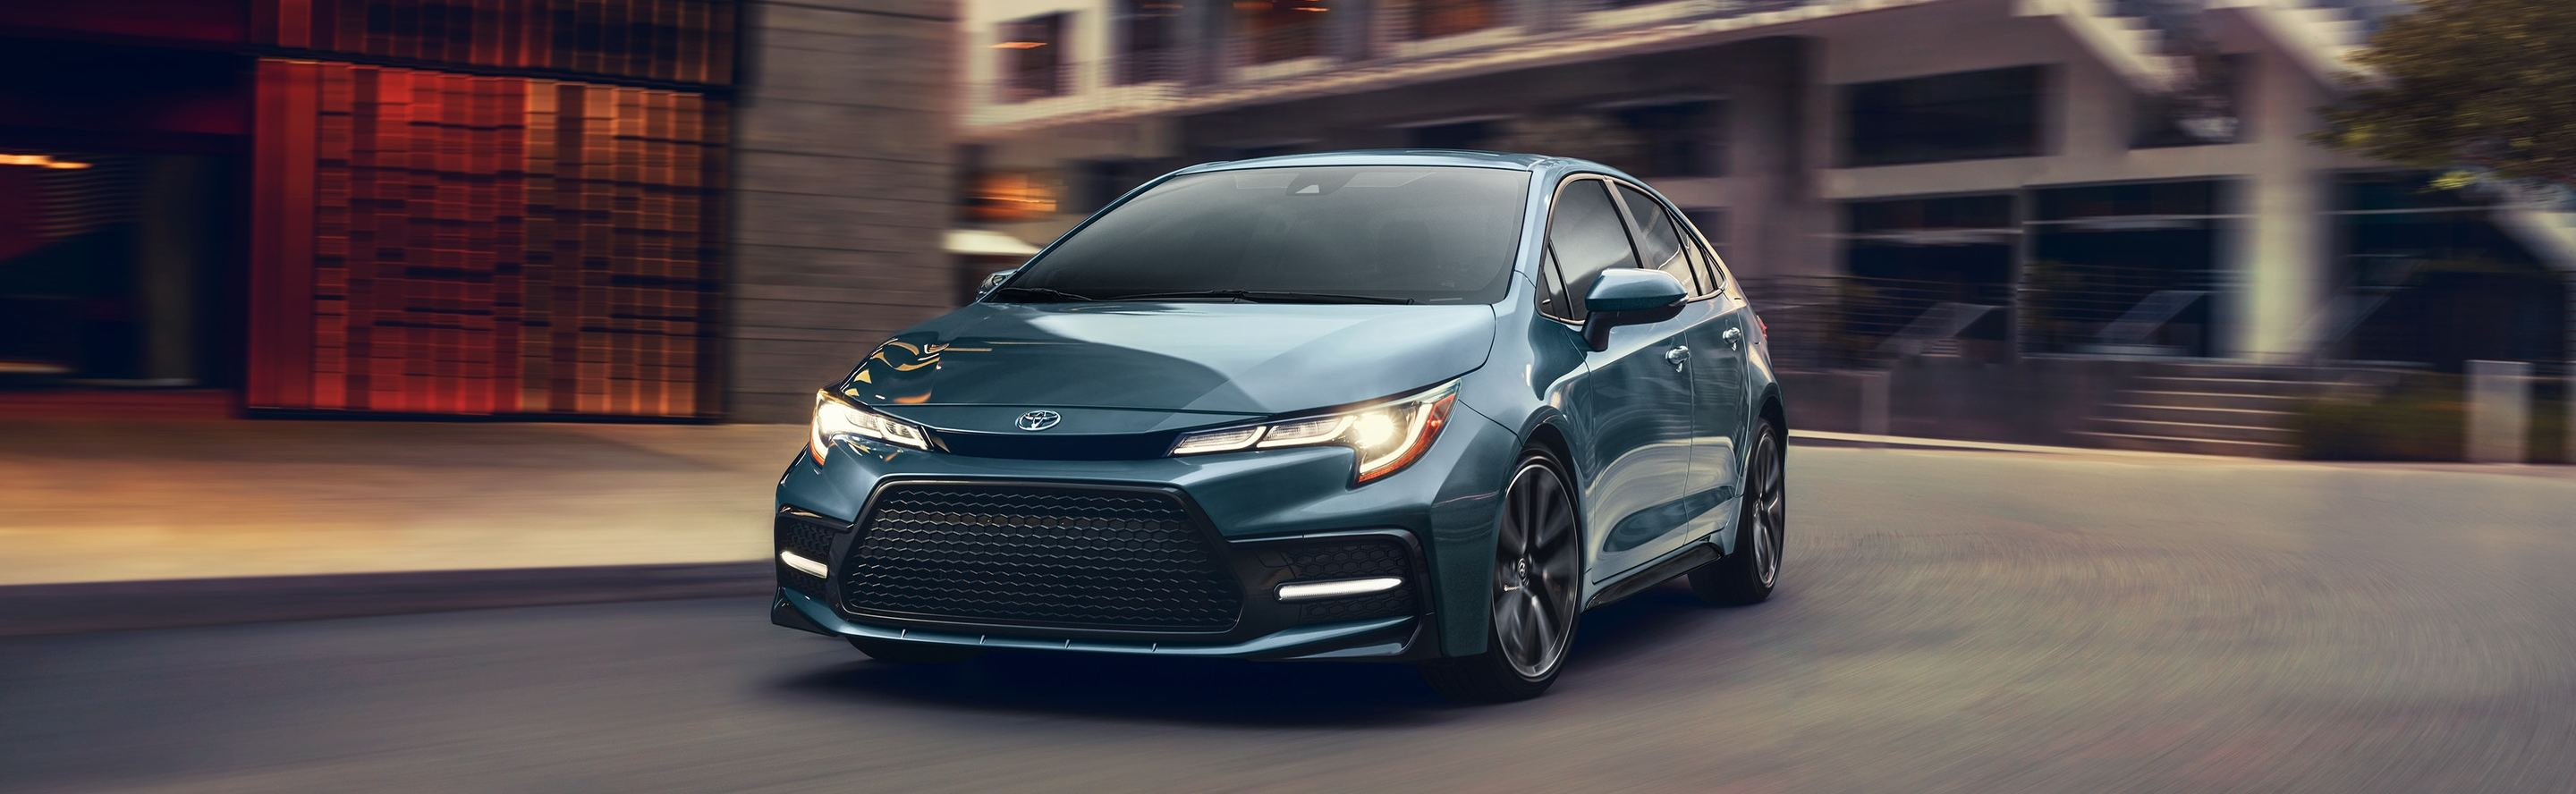 2020 Toyota Corolla for Sale near Moline, IL